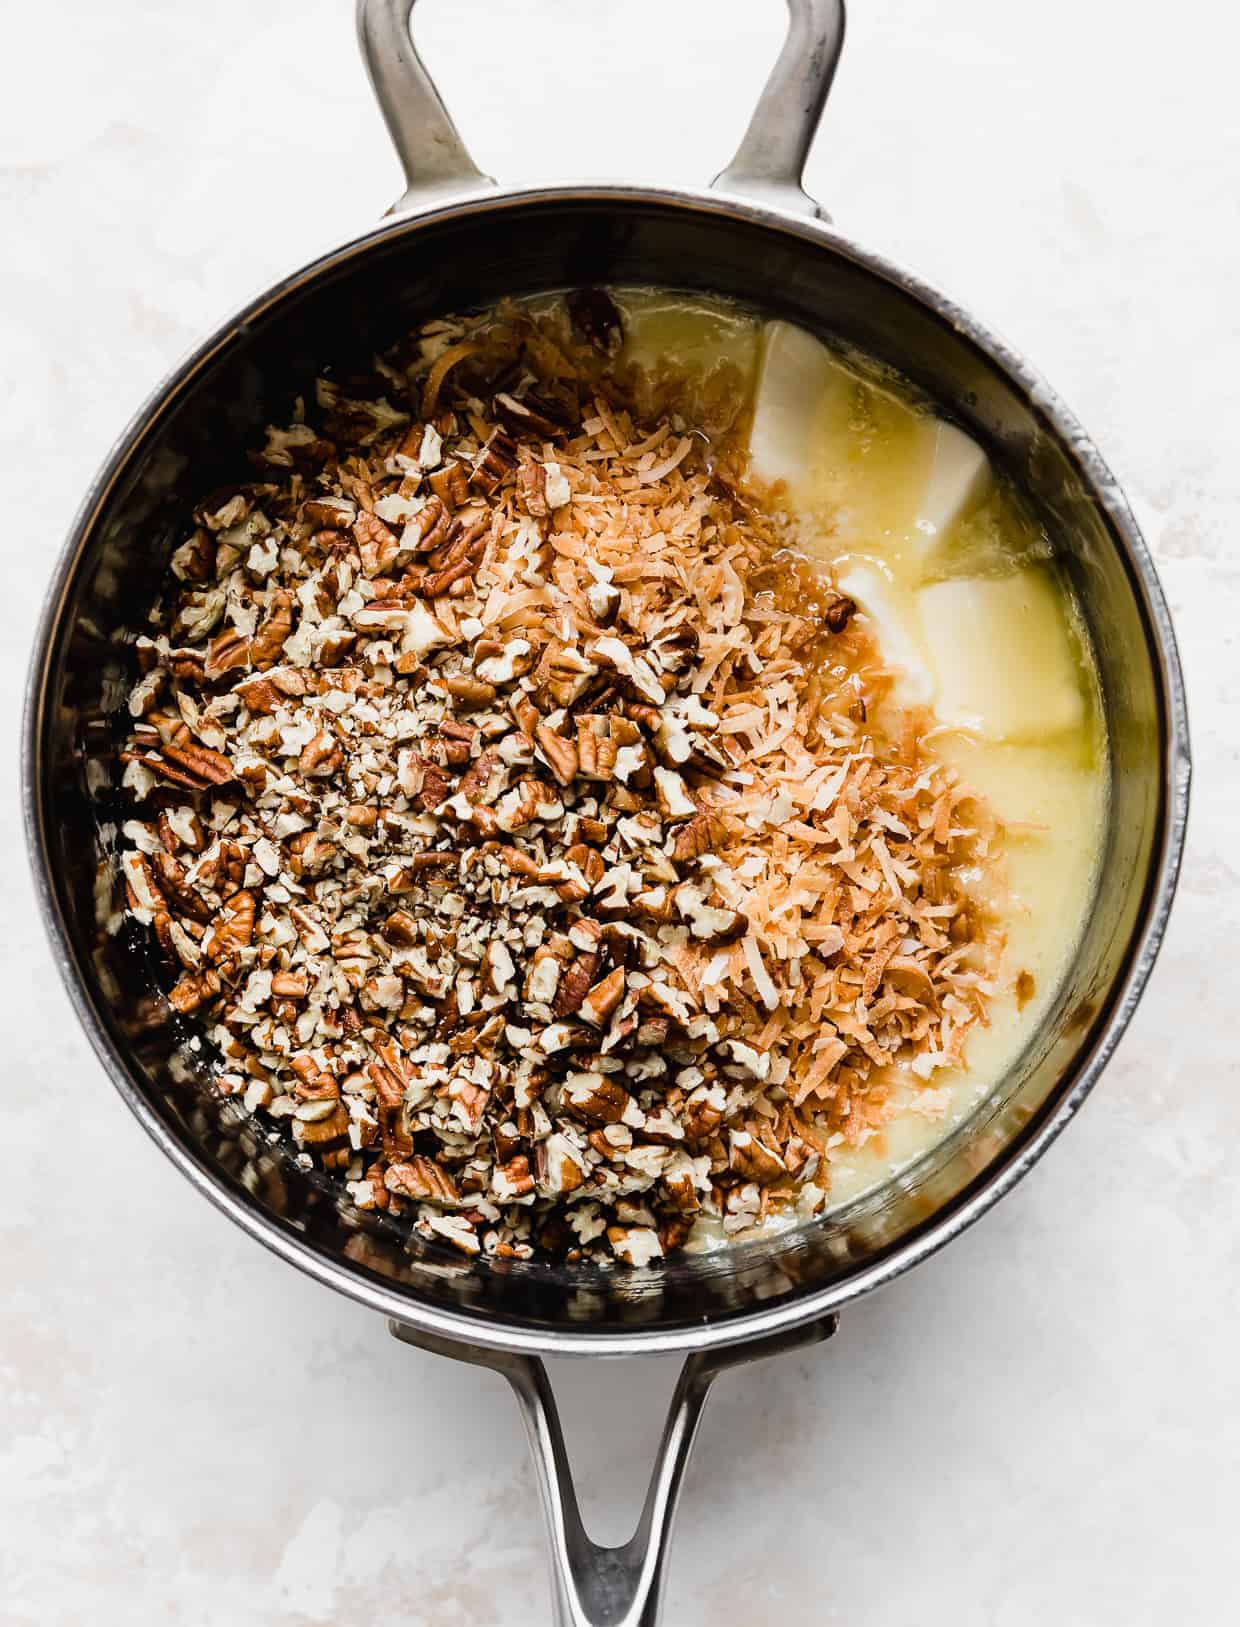 A saucepan with cubed butter, toasted coconut, and chopped pecans in it.